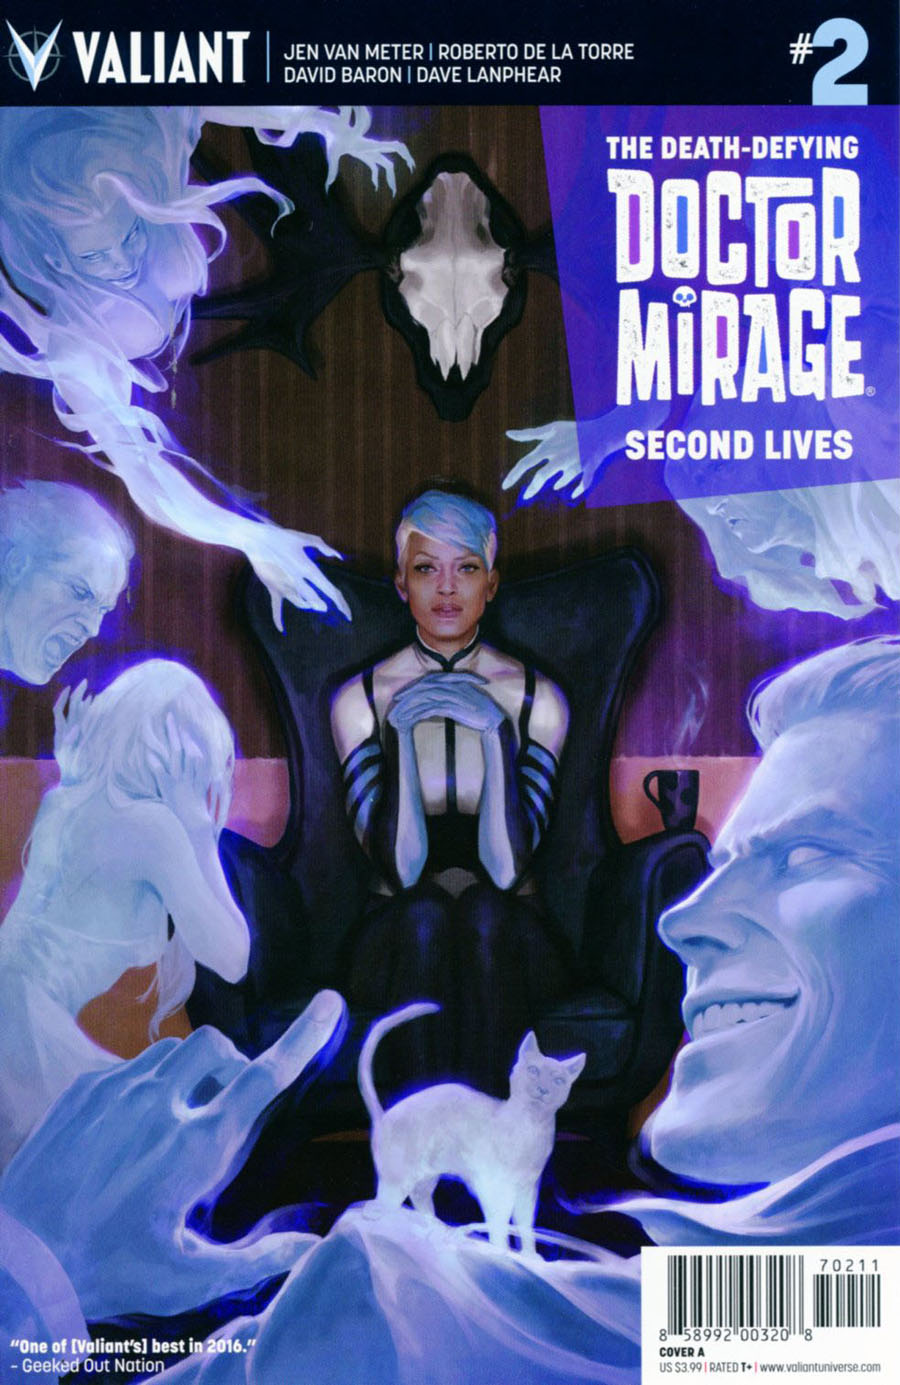 Death-Defying Doctor Mirage Second Lives #2 Cover A Regular Jelena Kevic-Djurdjevic Cover